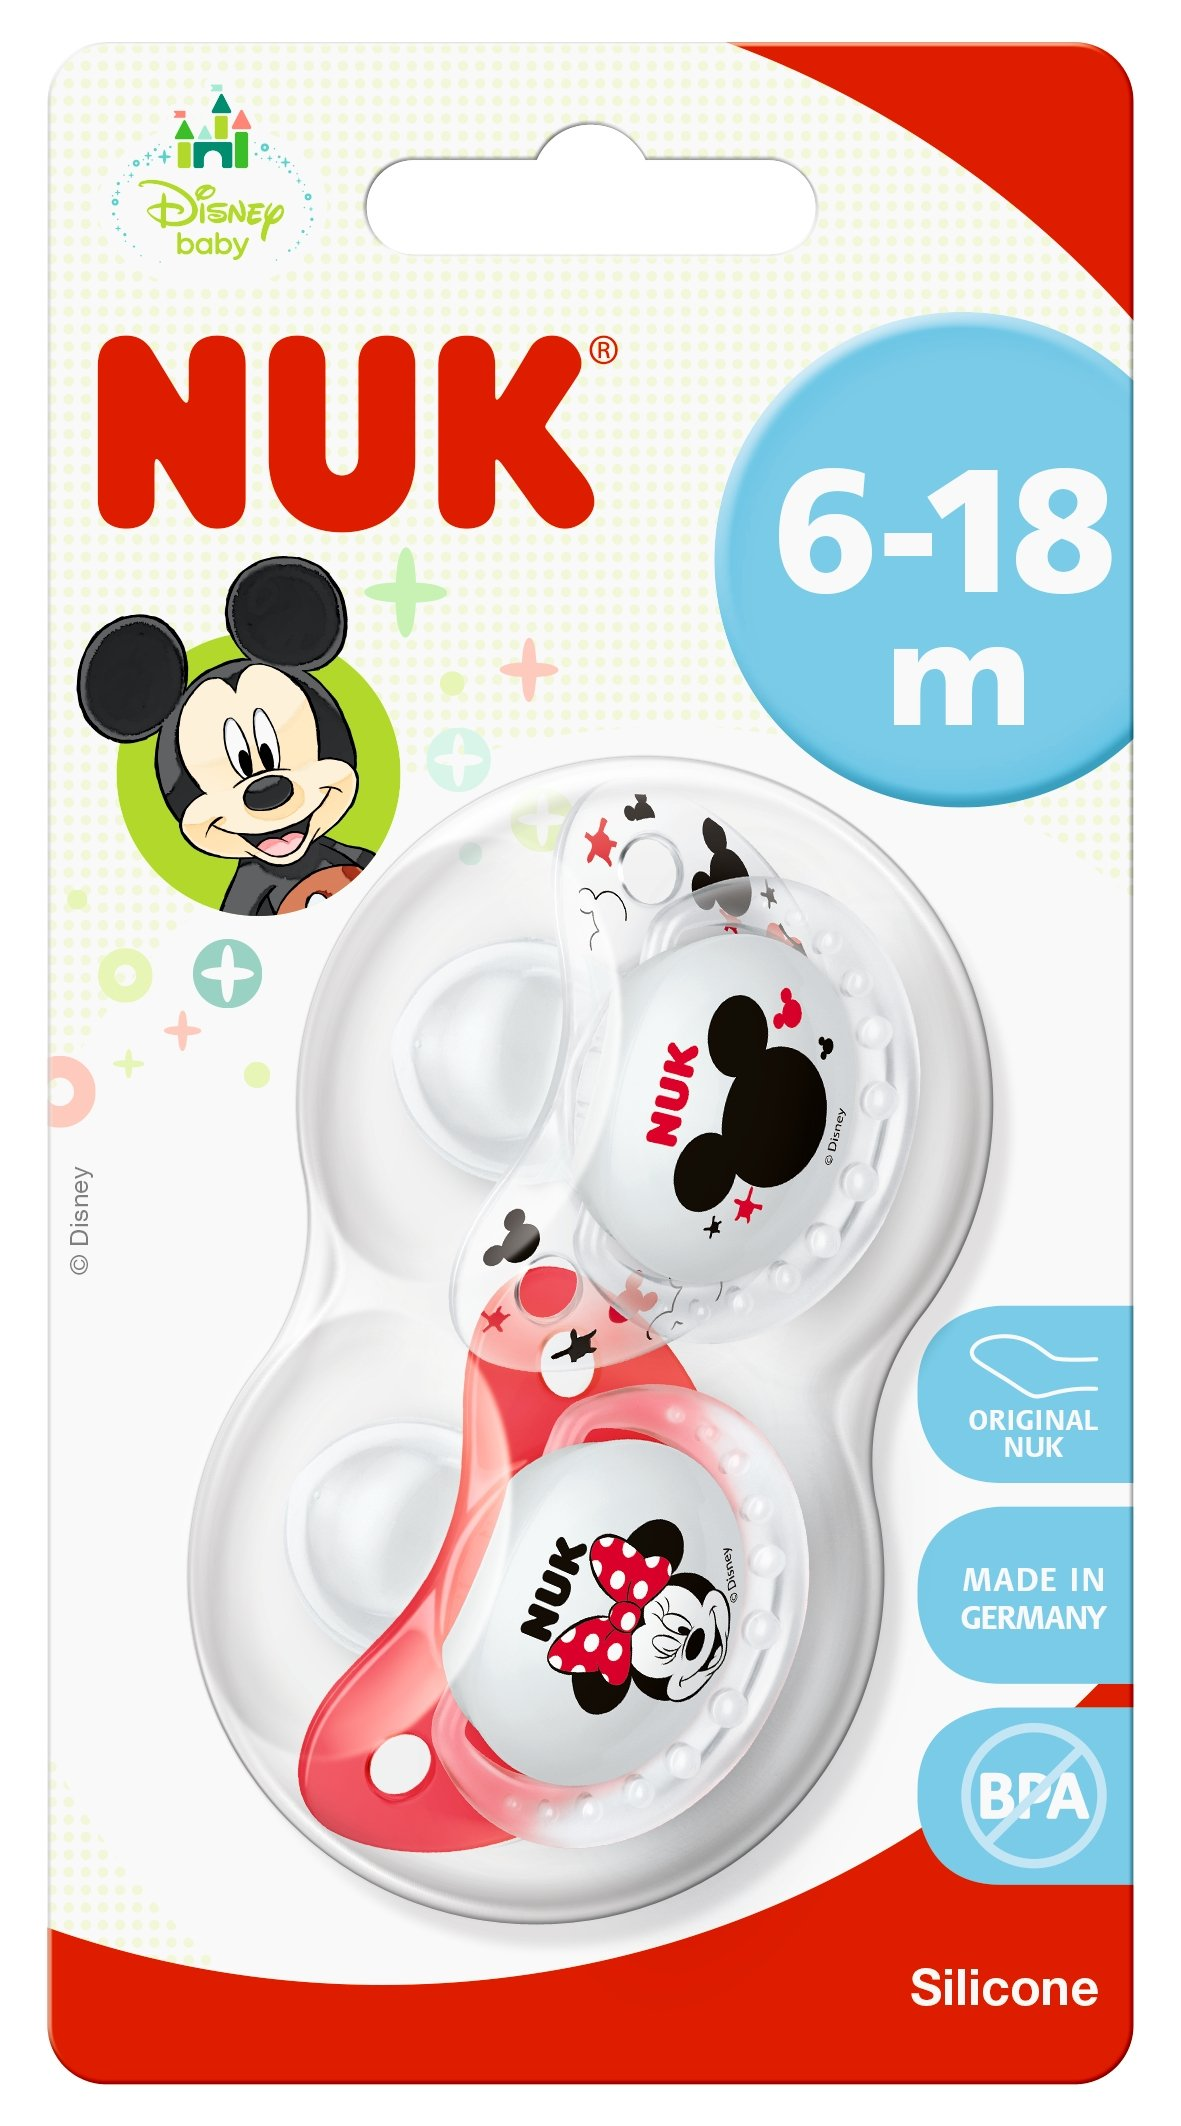 6-18 Months Soother /& Sippy Cup Set NUK Disney Baby Bottle Minnie Mouse Design 2 Soother Dummies /& 2 Silicon Bottle Teats 1 Sippy Cup with 2 Baby Bottles